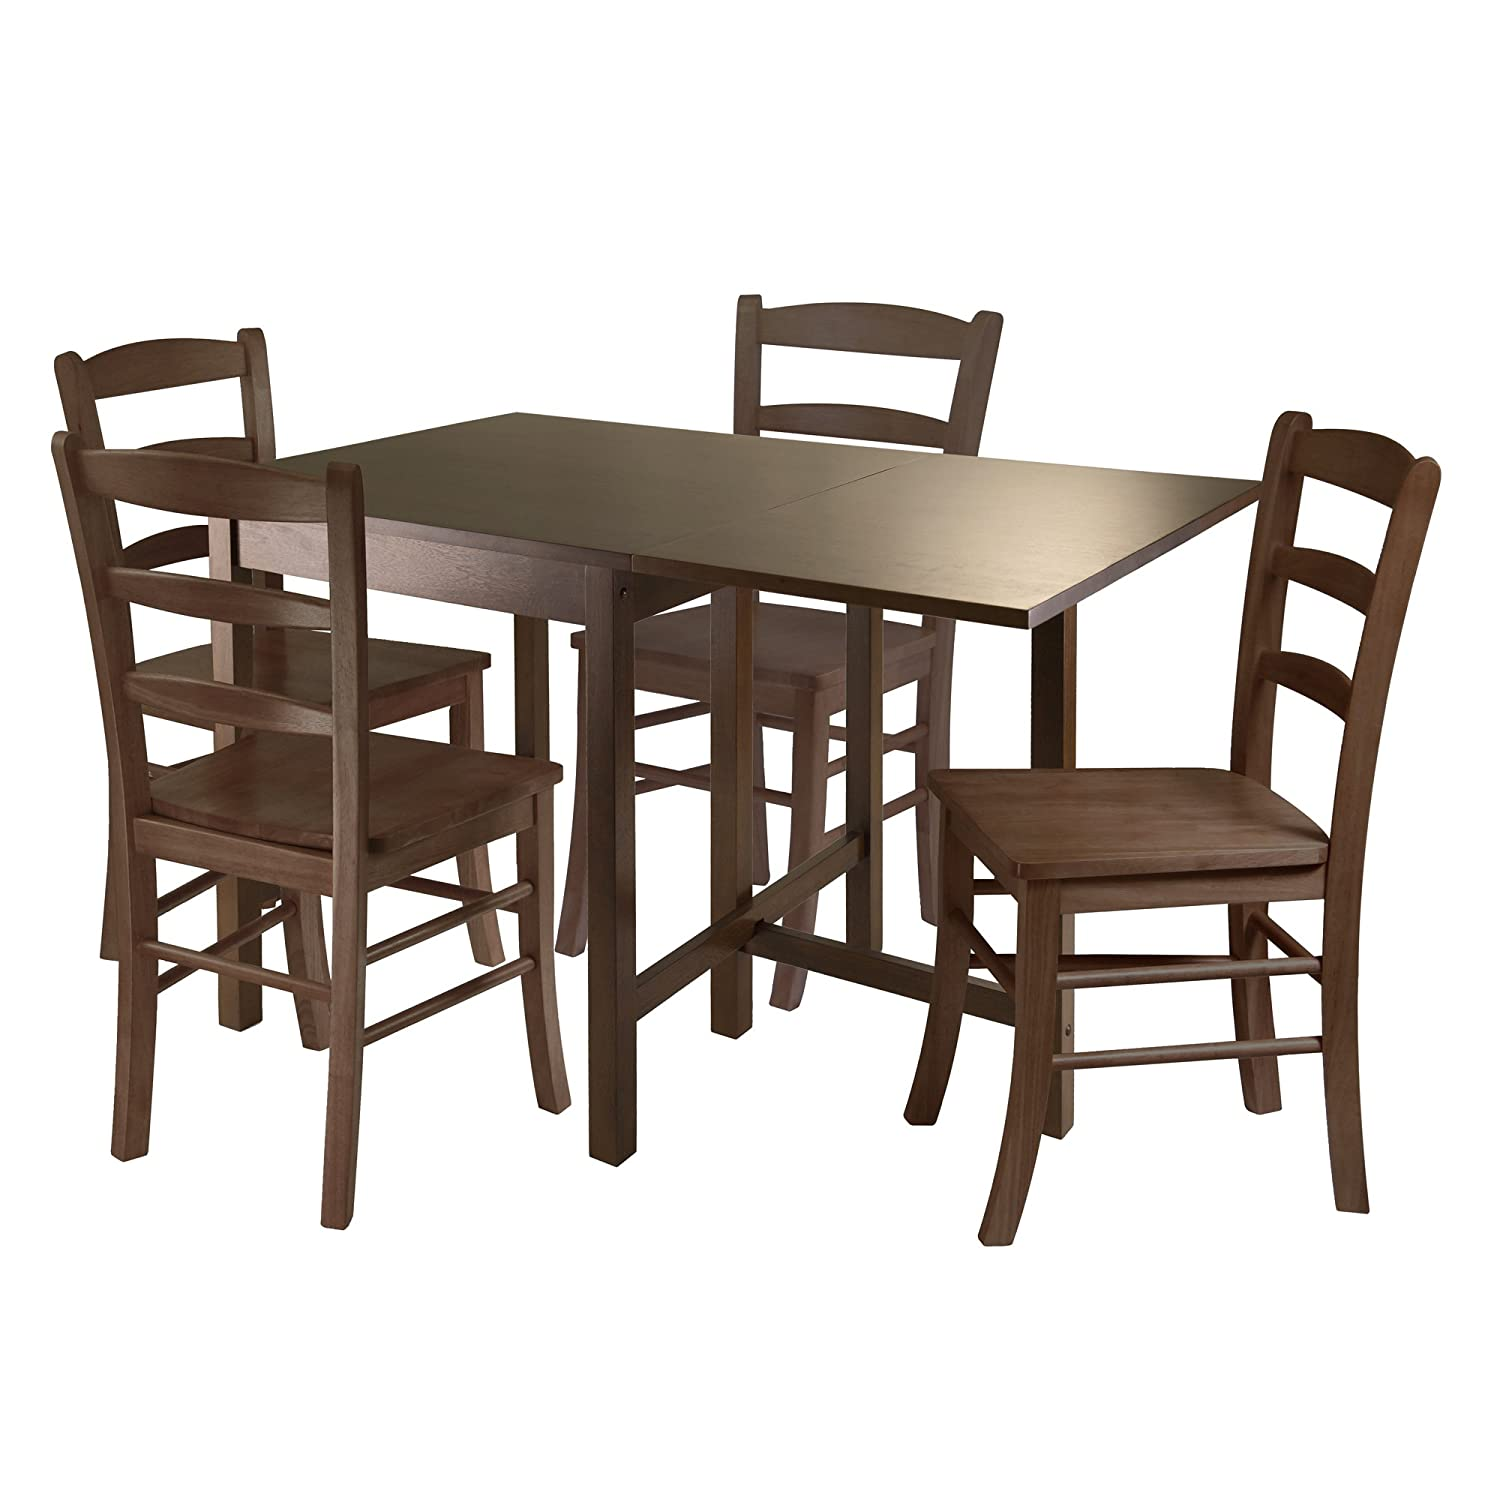 Fabulous Winsome Wood Lynden 5 Piece Dining Table With 4 Ladder Back Chairs Beutiful Home Inspiration Cosmmahrainfo